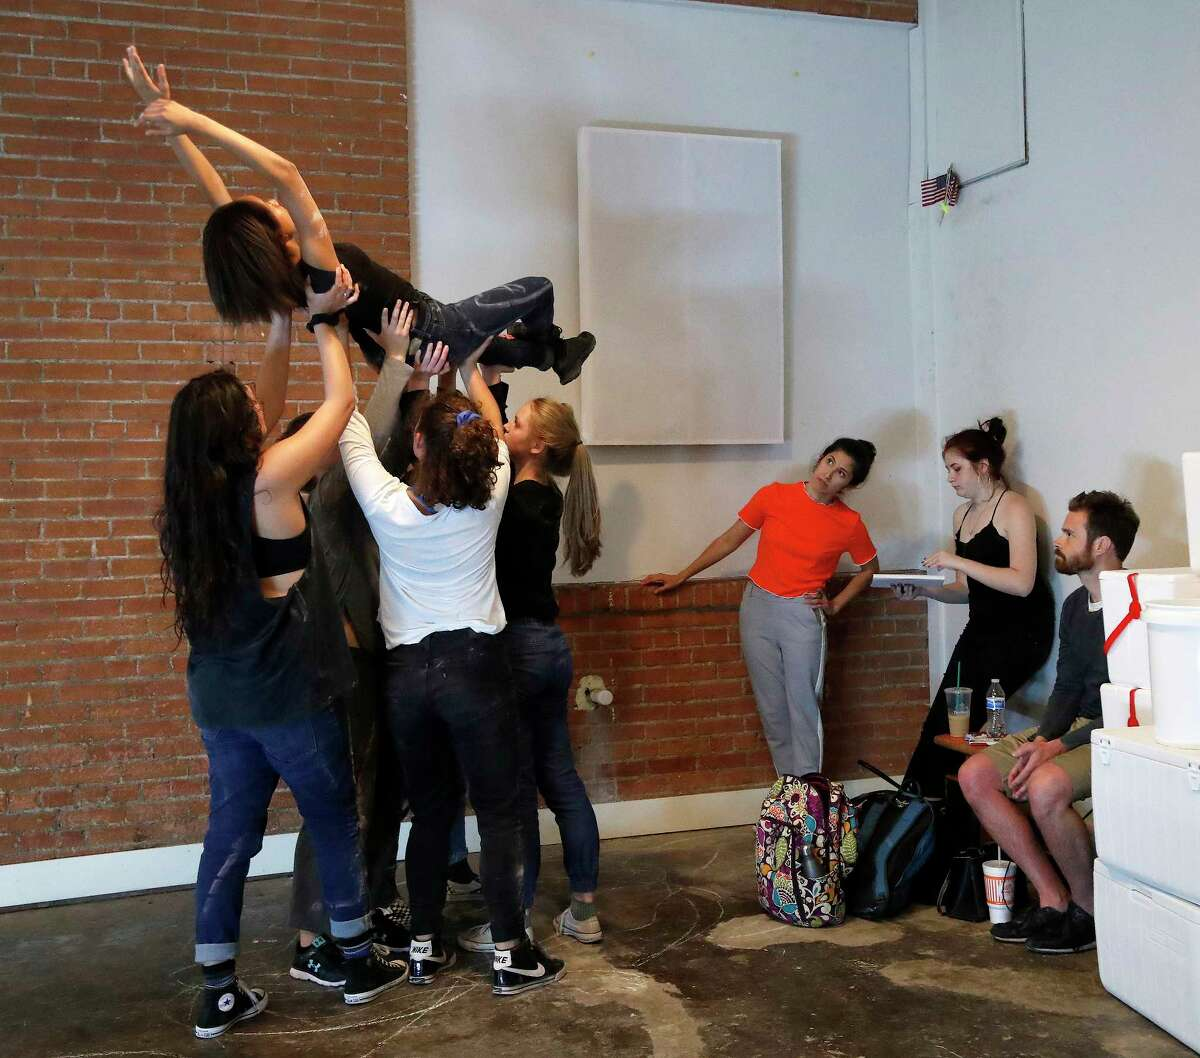 """Choreographer Laura Gutierrez talks to assistant director is Isabella Eleuterius as director Matt Hune watches dancers rehearse a new dance adaptation set to StravinskyÂ?'s """"The Rite of Spring,"""" at the Rec Room downtown, Wednesday, May 31, 2017. ( Karen Warren / Houston Chronicle )"""